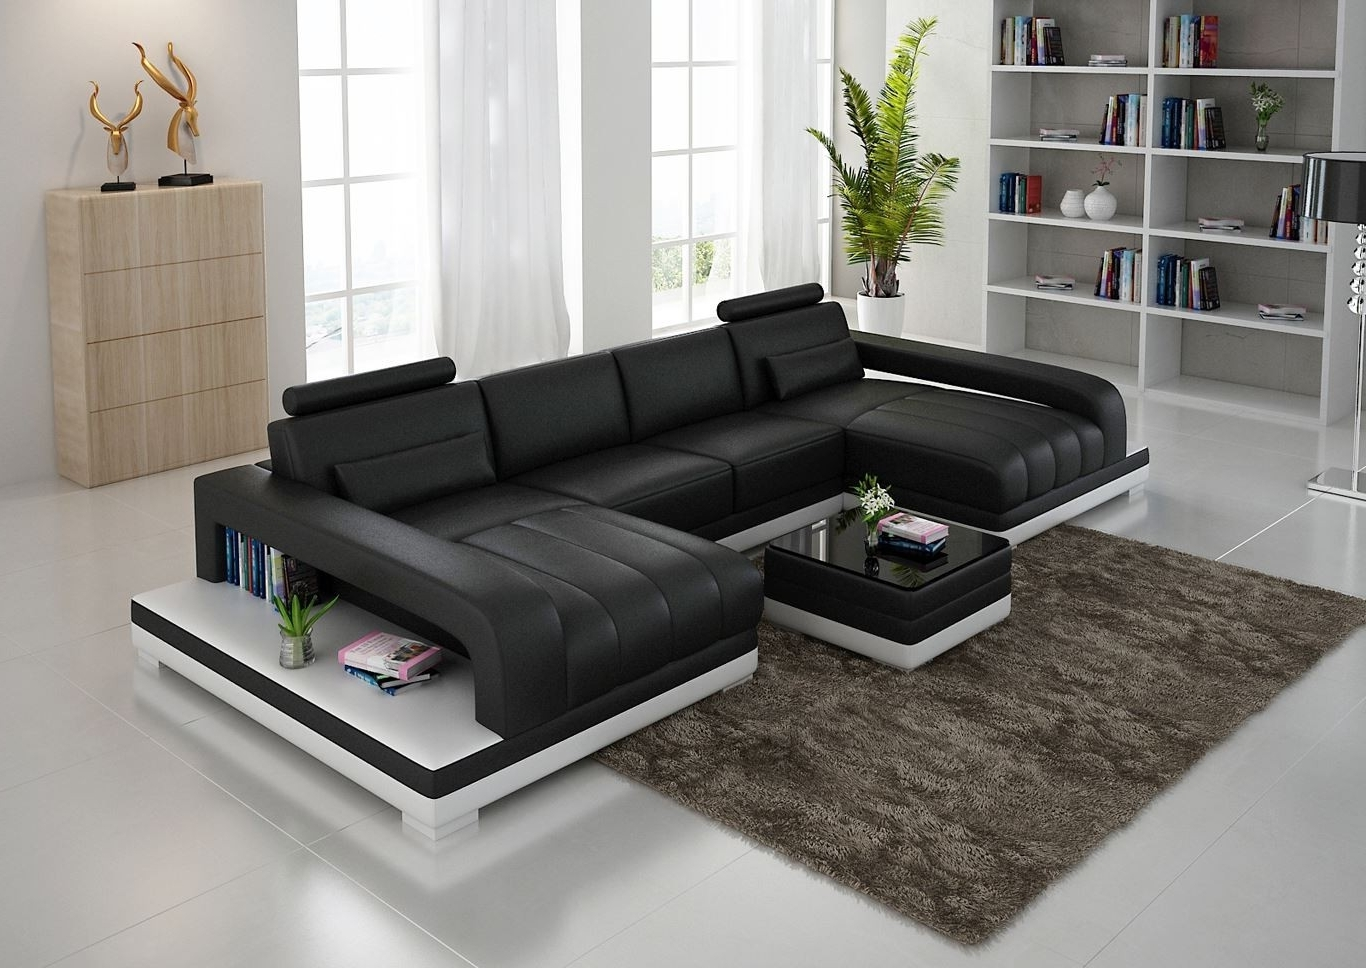 Best And Newest Double Chaise Sectional Sofas: Type And Finishing (View 4 of 15)